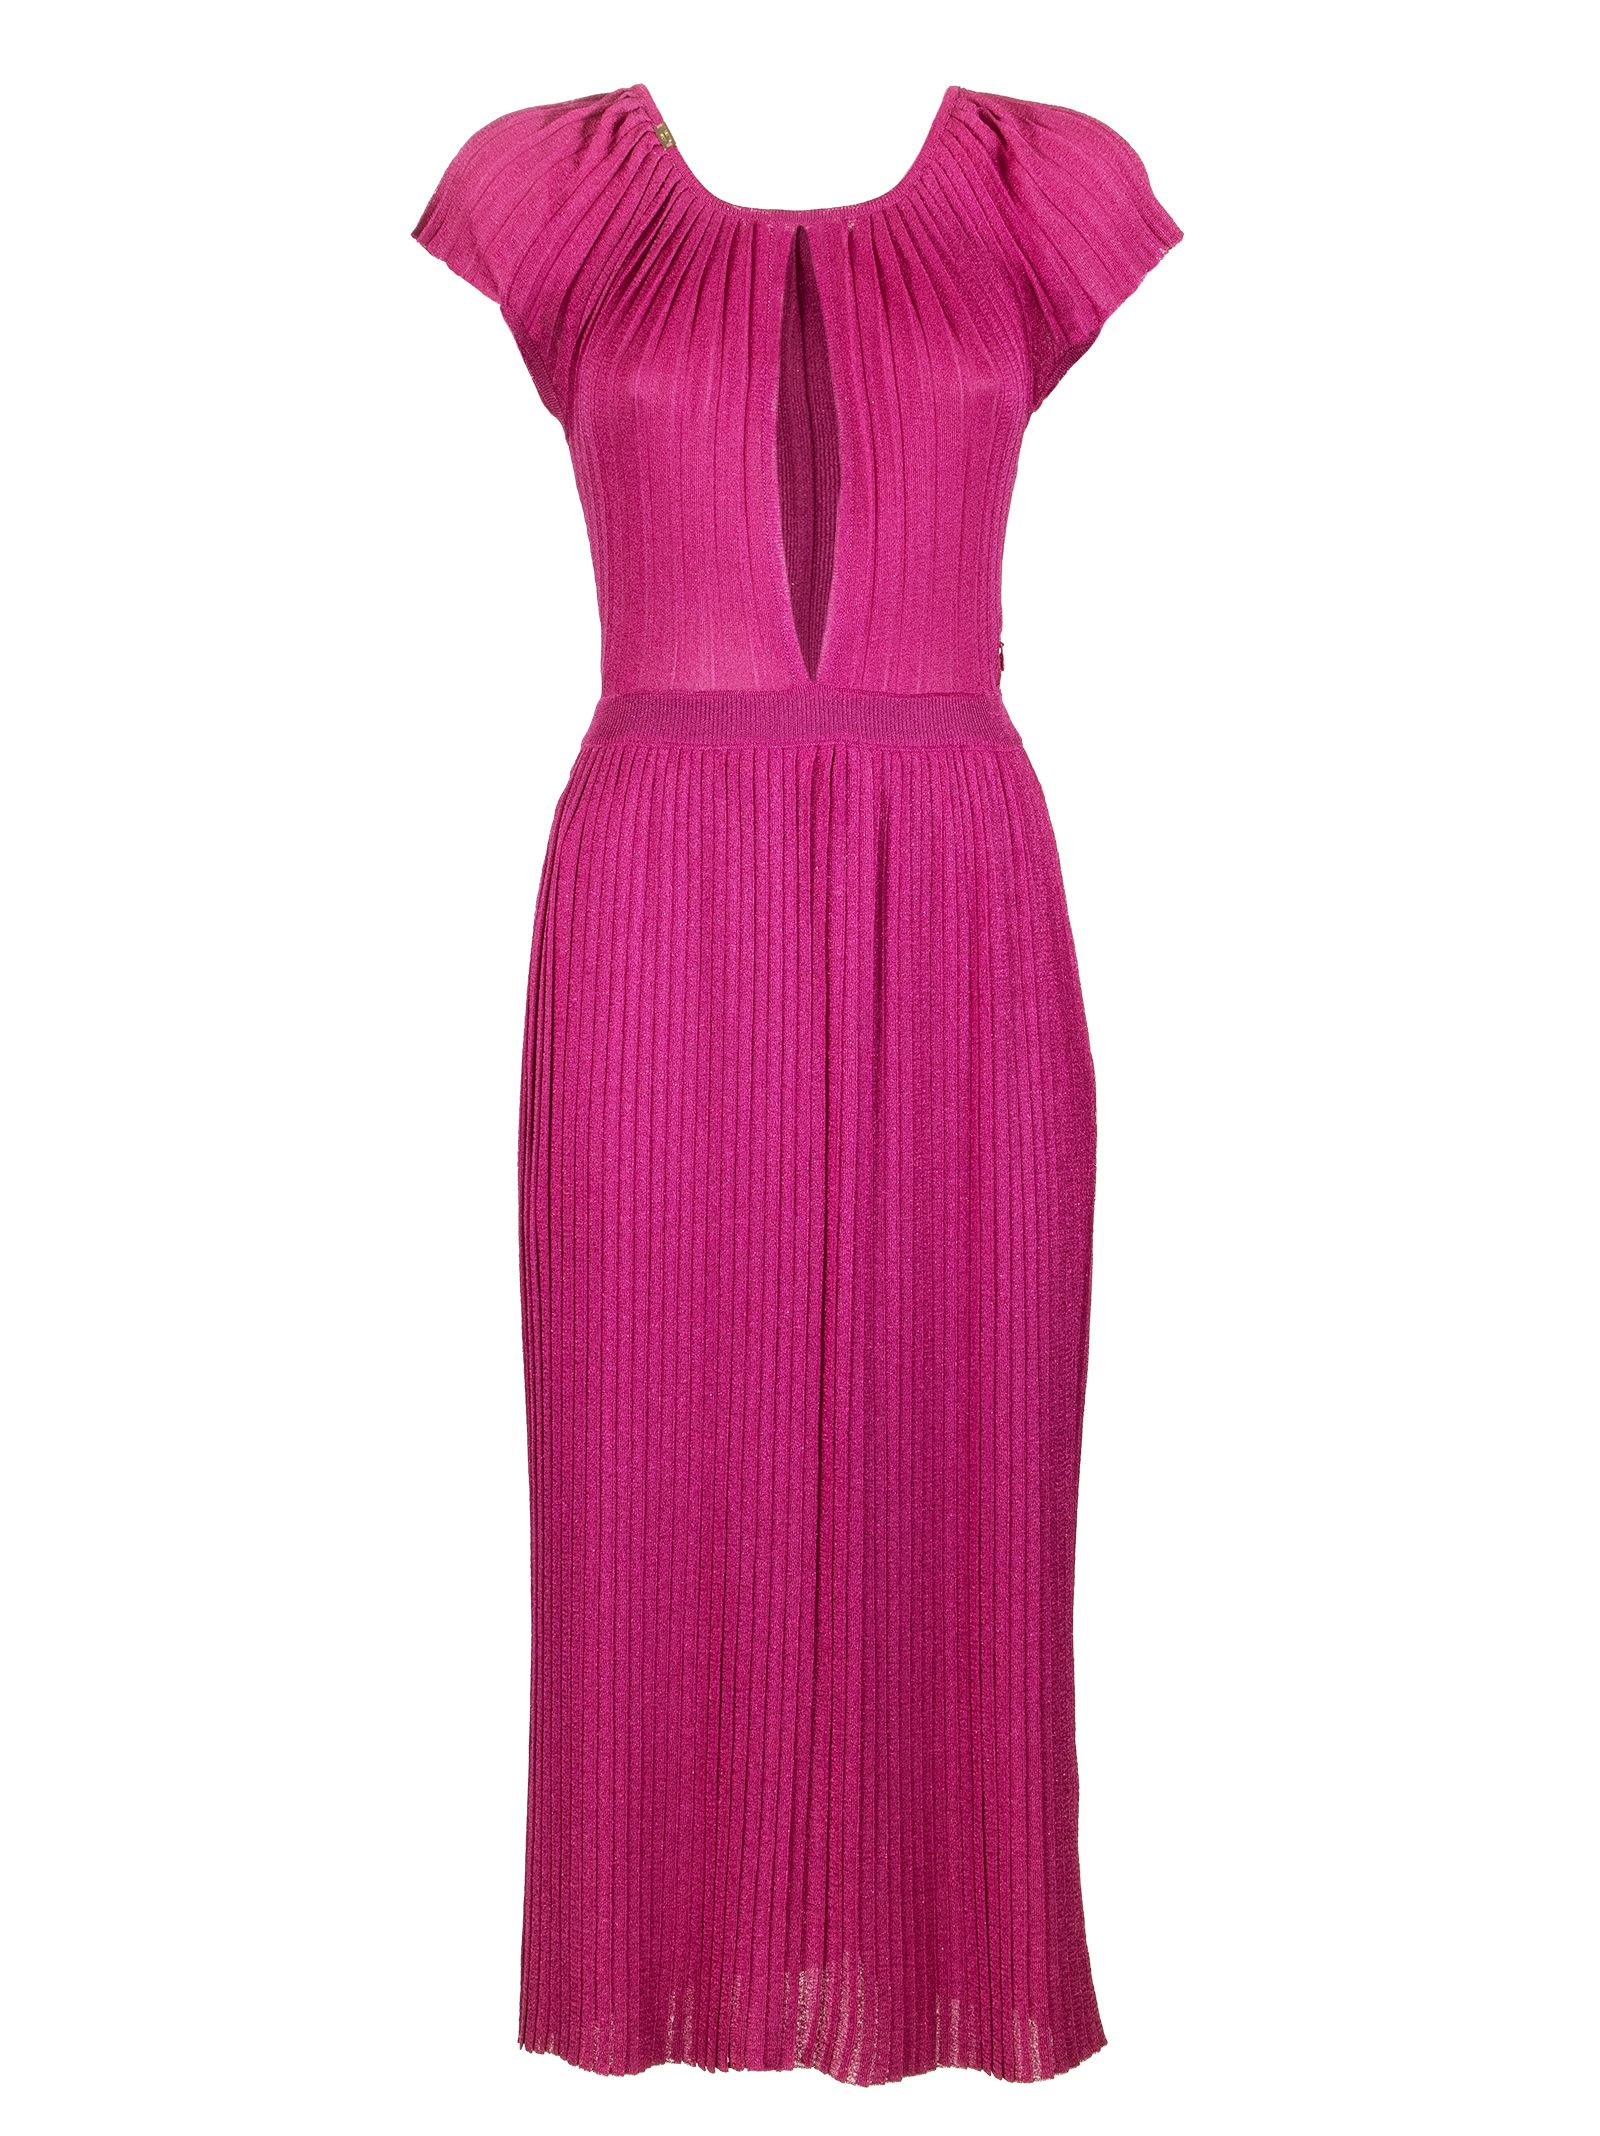 Buy Elisabetta Franchi Celyn B. Knee-length Pleated Dress online, shop Elisabetta Franchi Celyn B. with free shipping